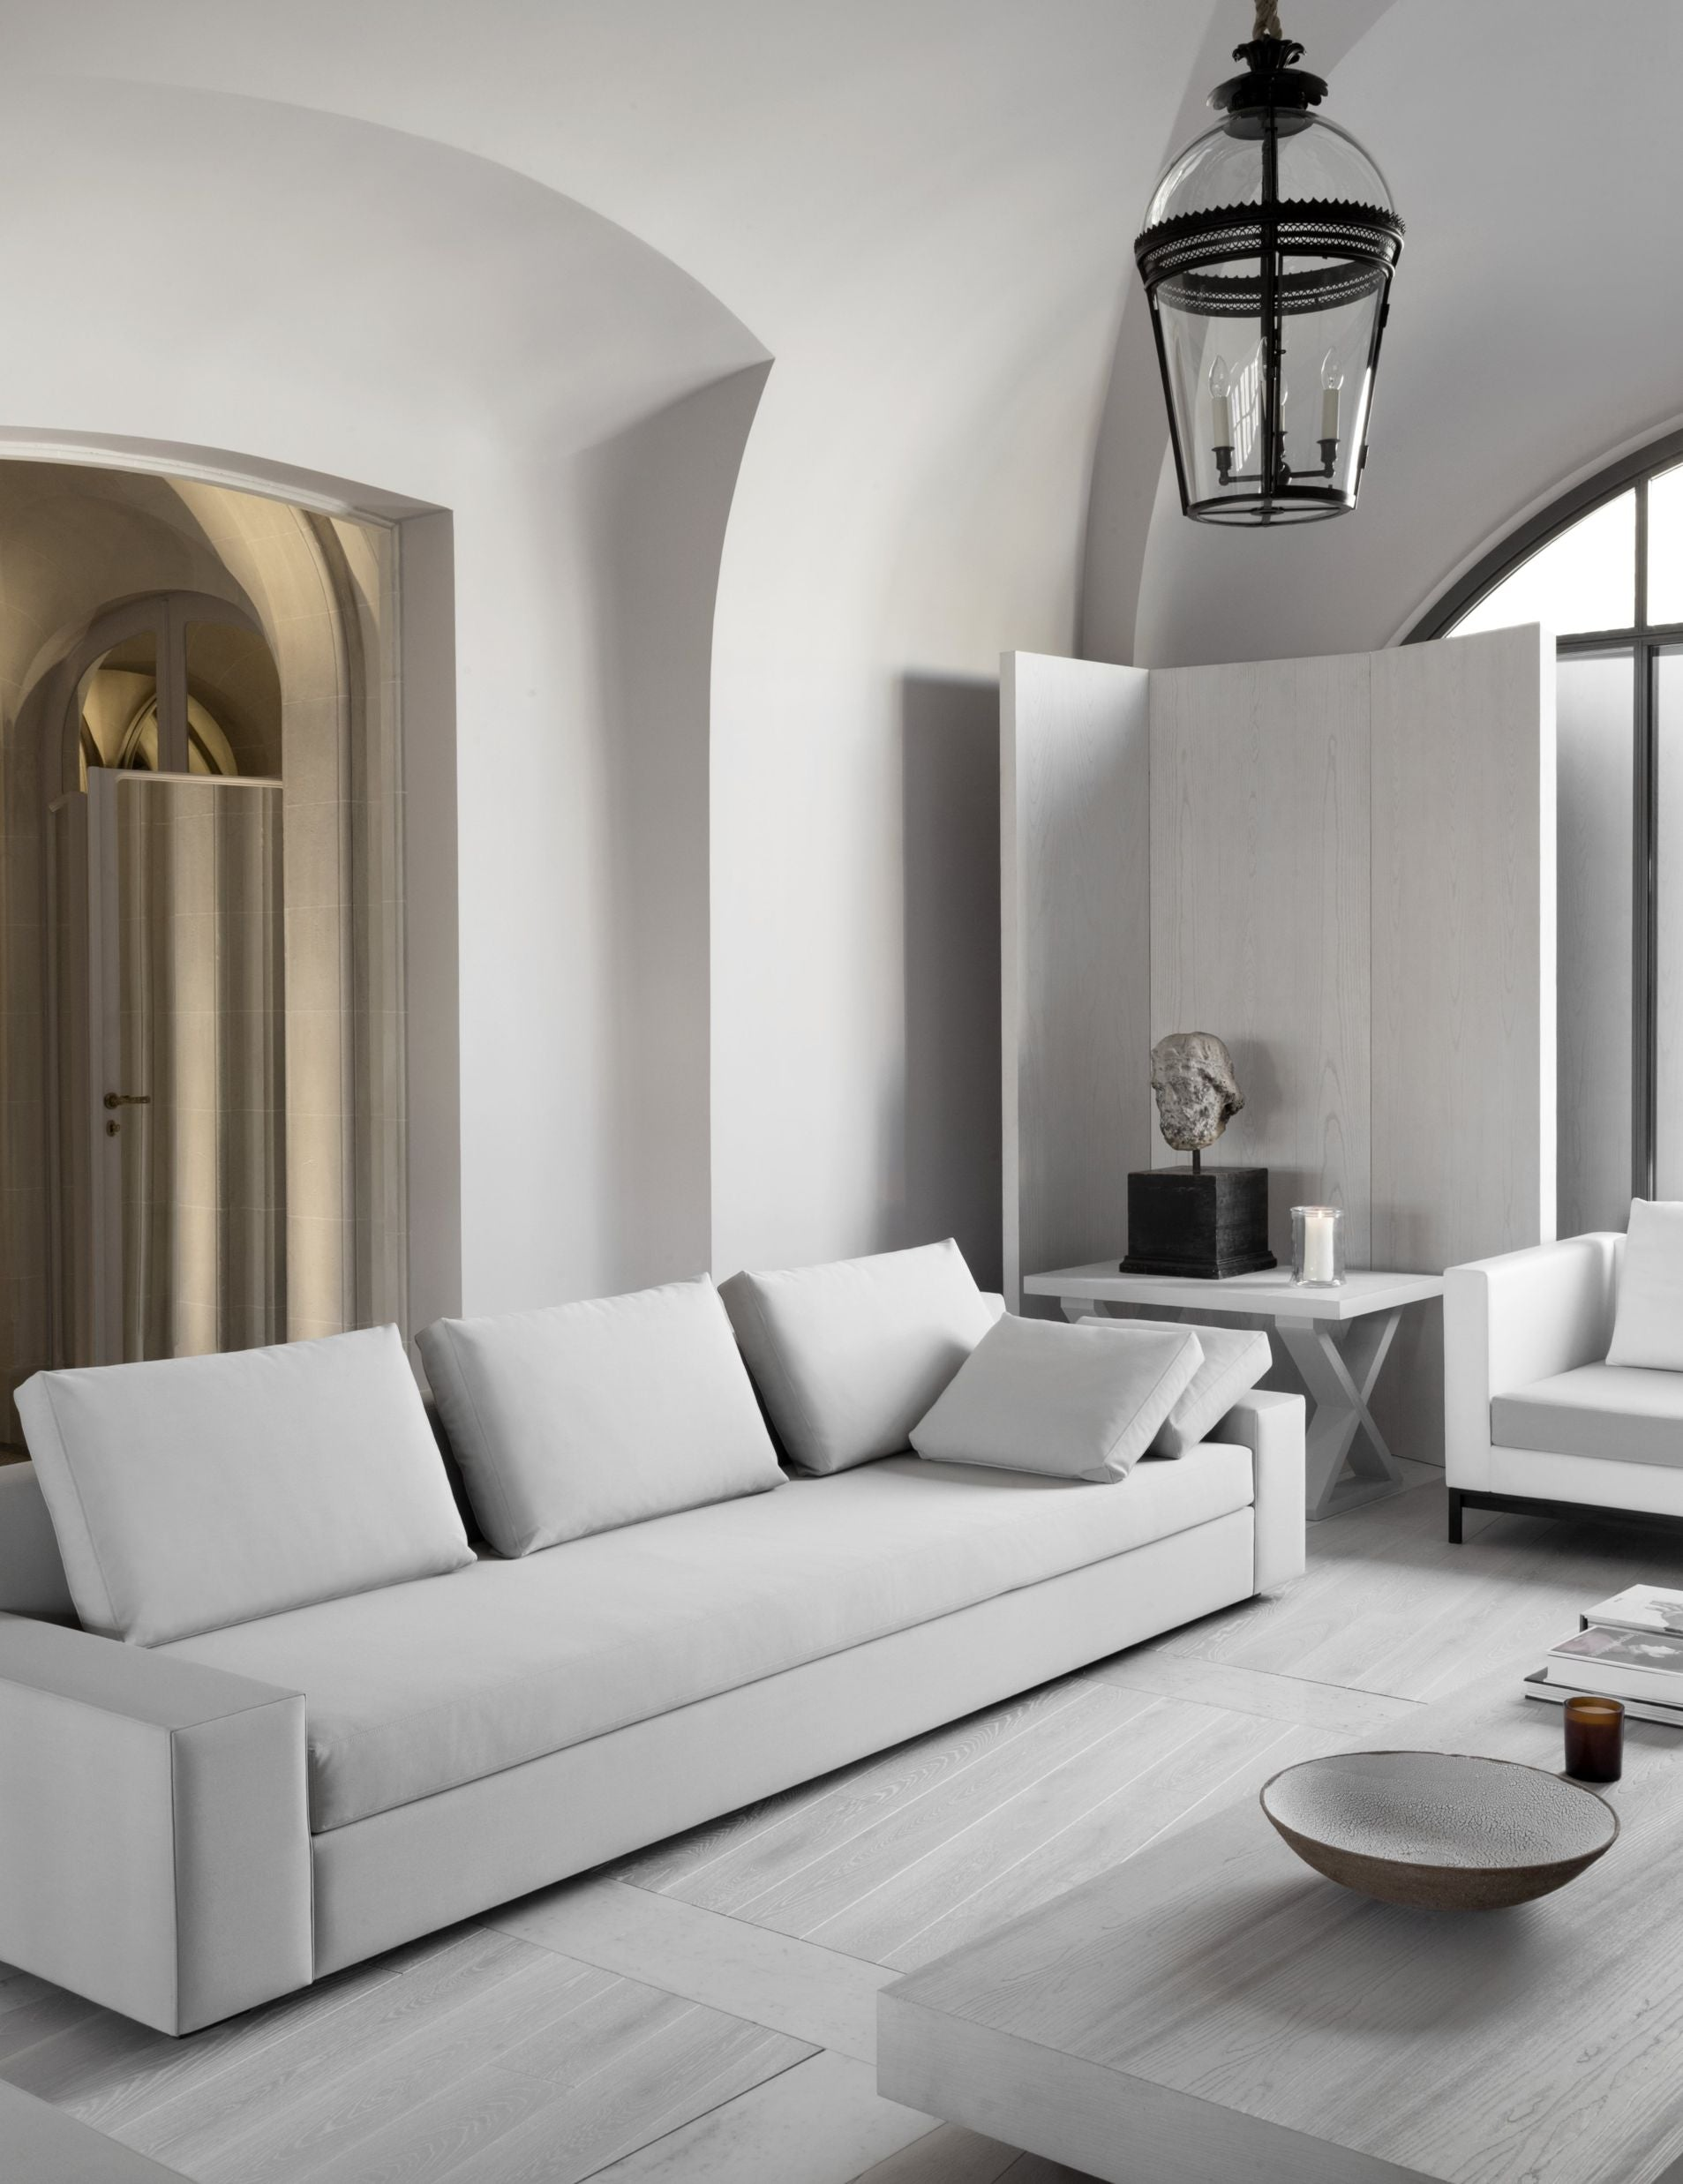 Sophisticated Minimalism - Autumn Interior Design Trends - LuxDeco Style Guide